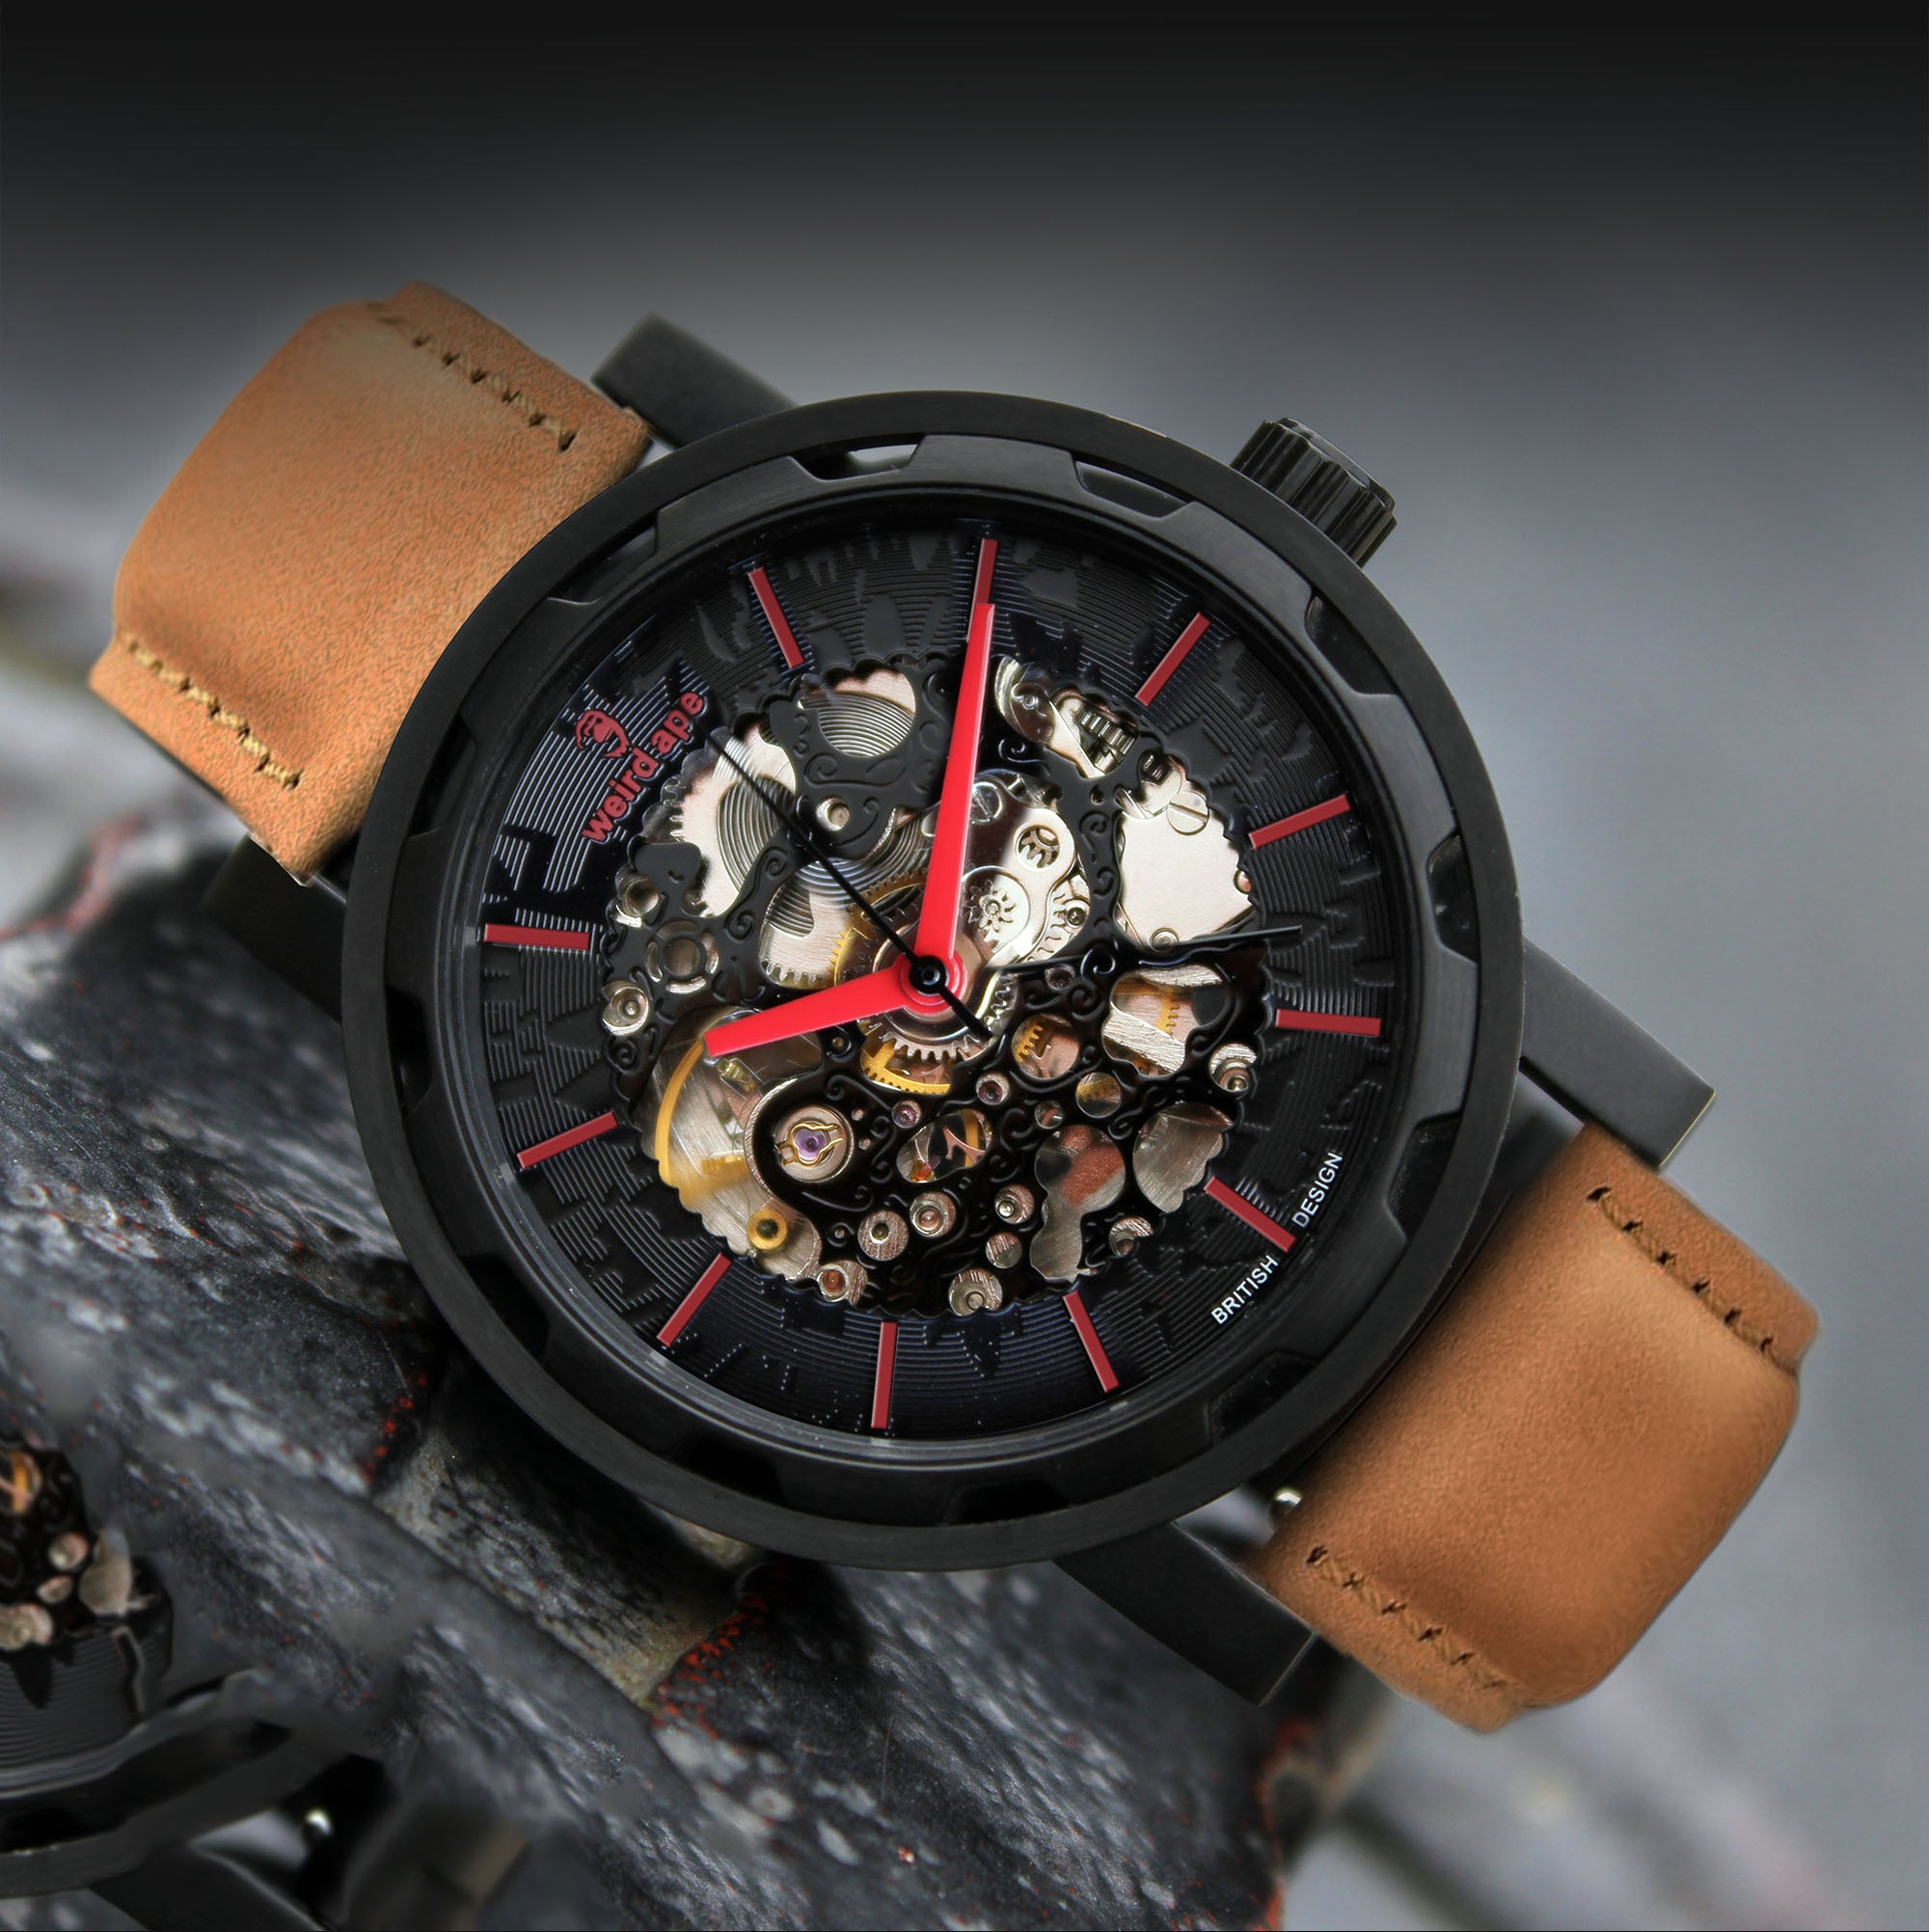 A picture of a black mechanical watch with a tan leather strap.